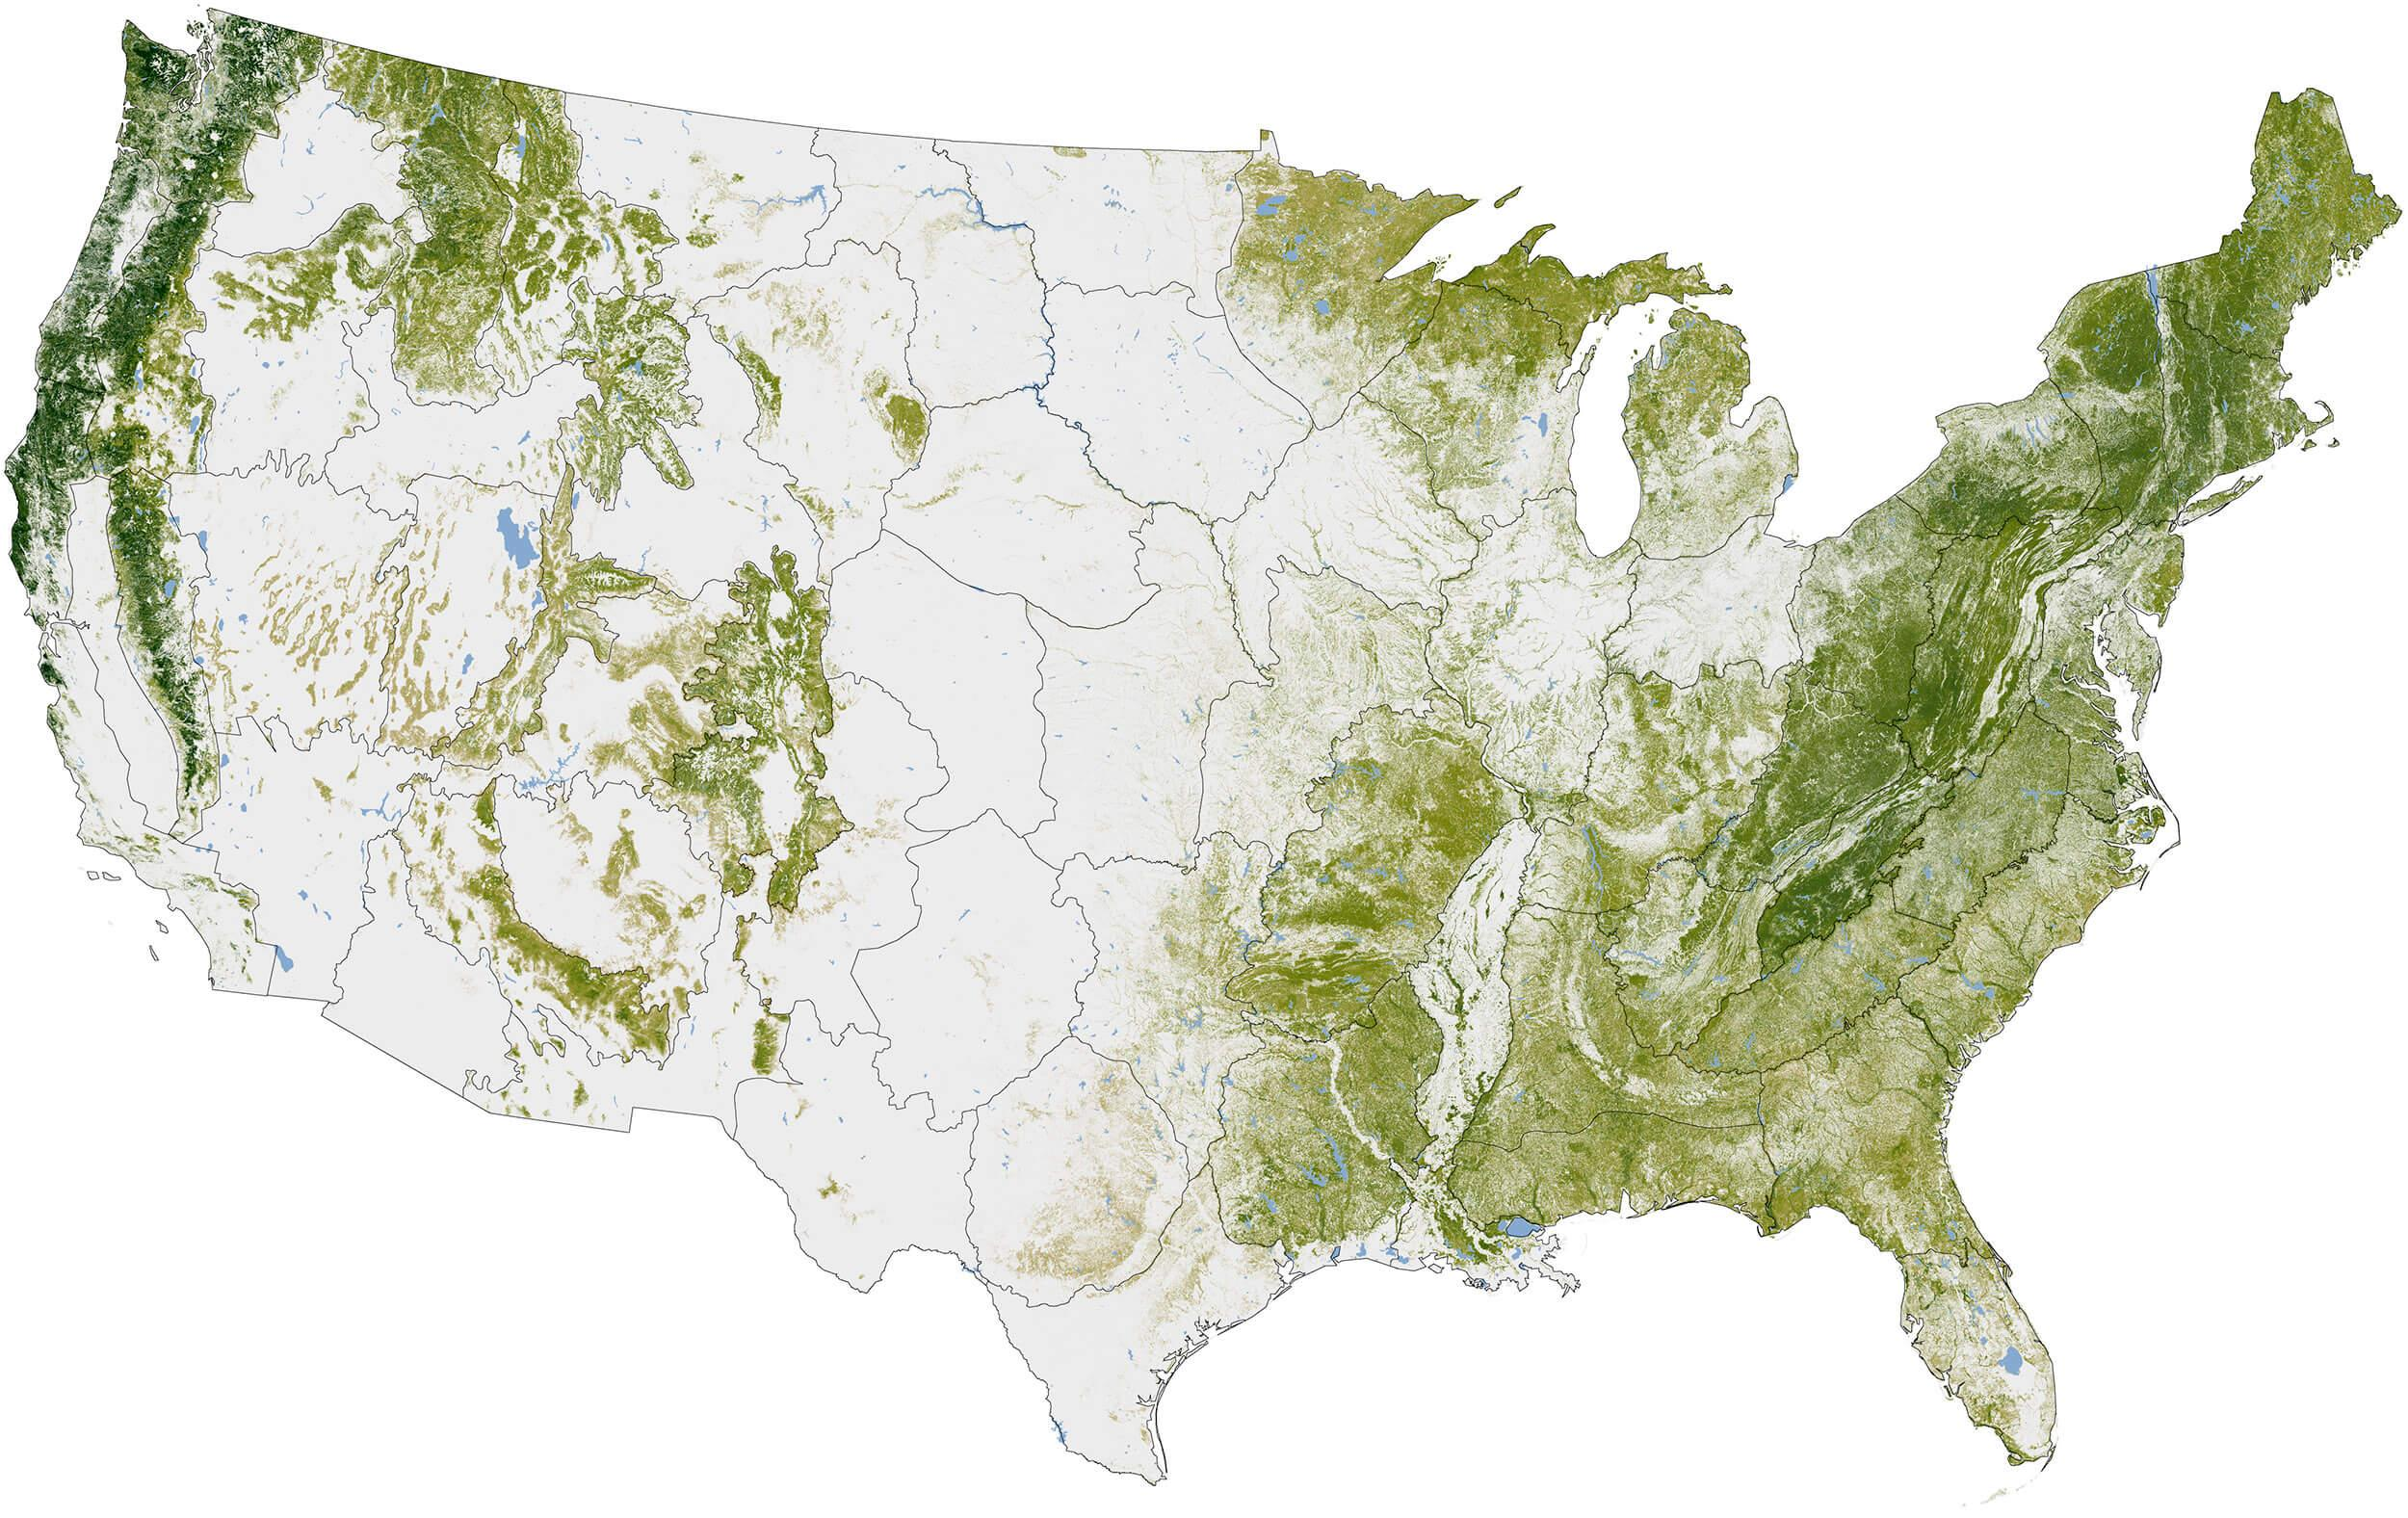 Forests cover about 30% of the planet's land area, and as much as 45% of the carbon stored on land is tied up in forests. The National Biomass and Carbon Dataset is the largest high-resolution map of forest biomass yet assembled. Map by Robert Simmon based on 2011 data from Woods Hole Research Center. Source: NASA Mitigating Paper Emissions Through Sustainable Forestry